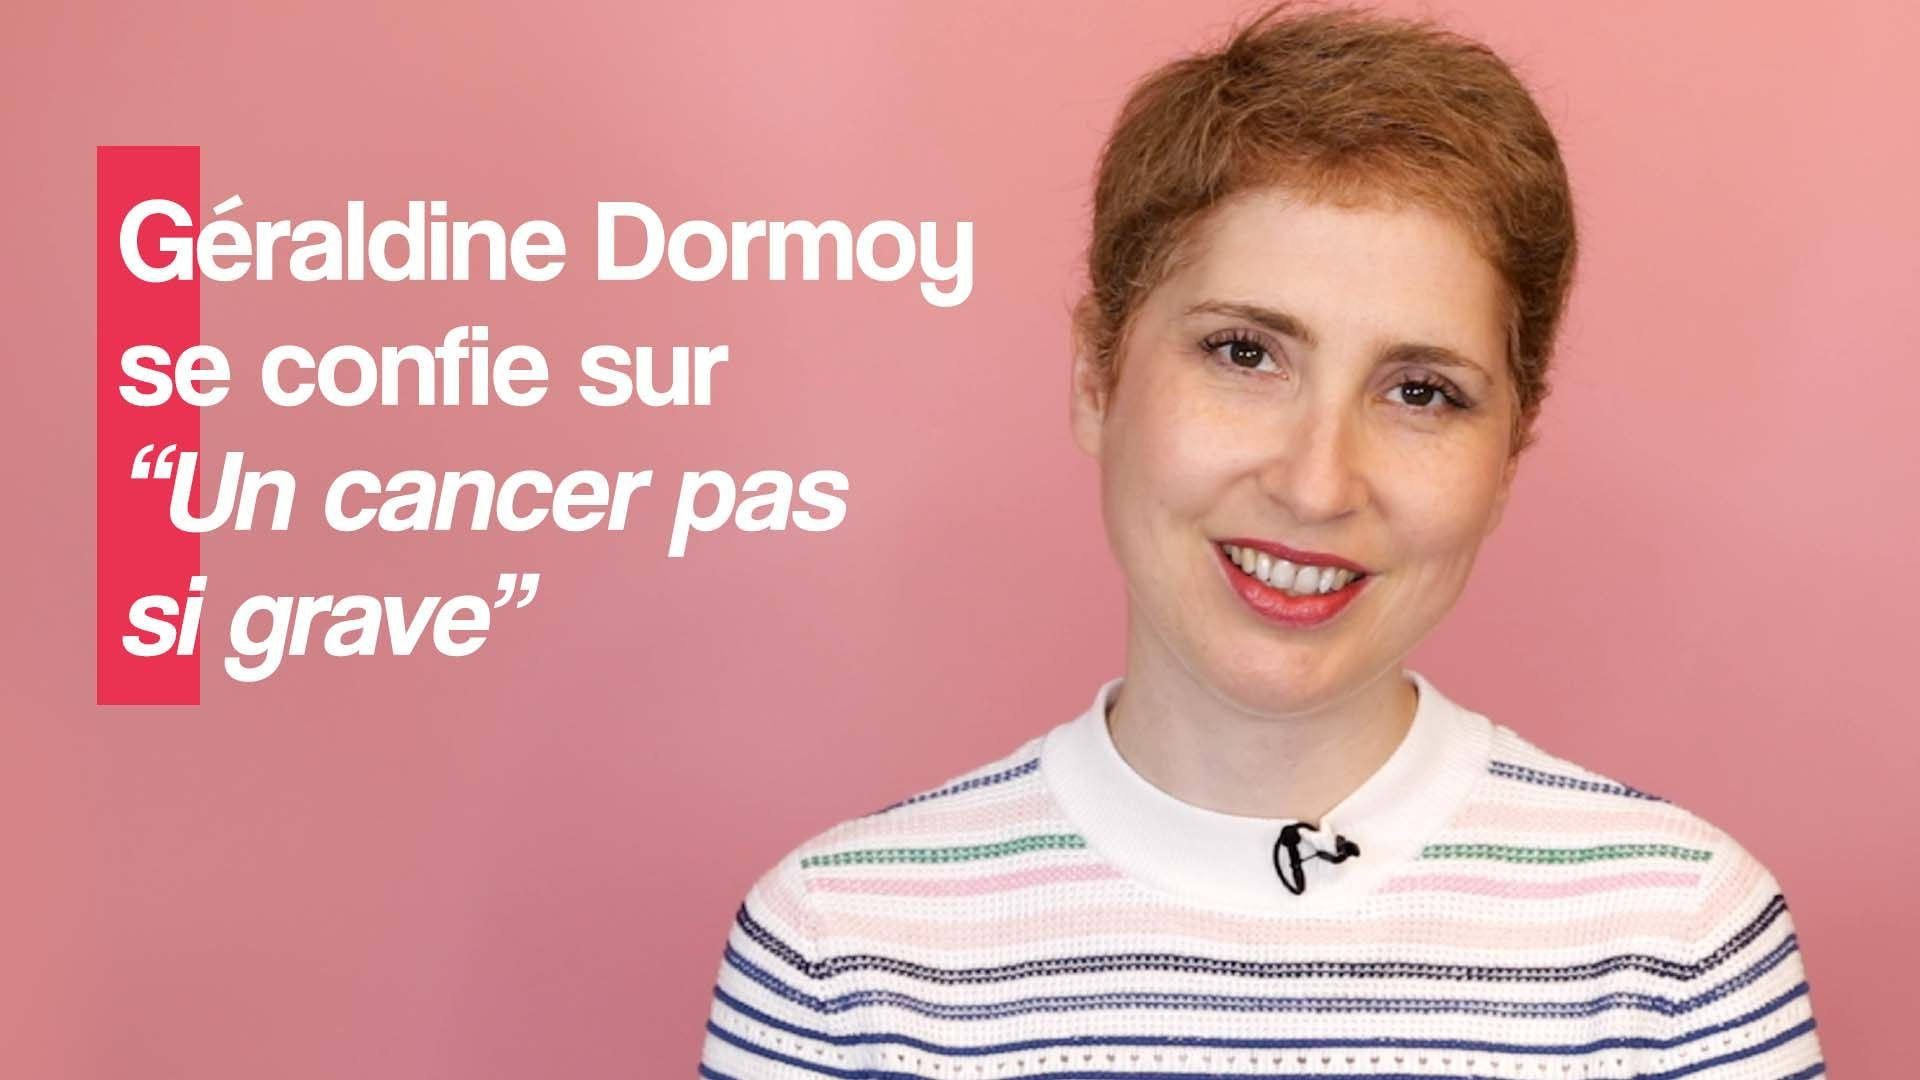 Le journal intime de Géraldine contre le cancer